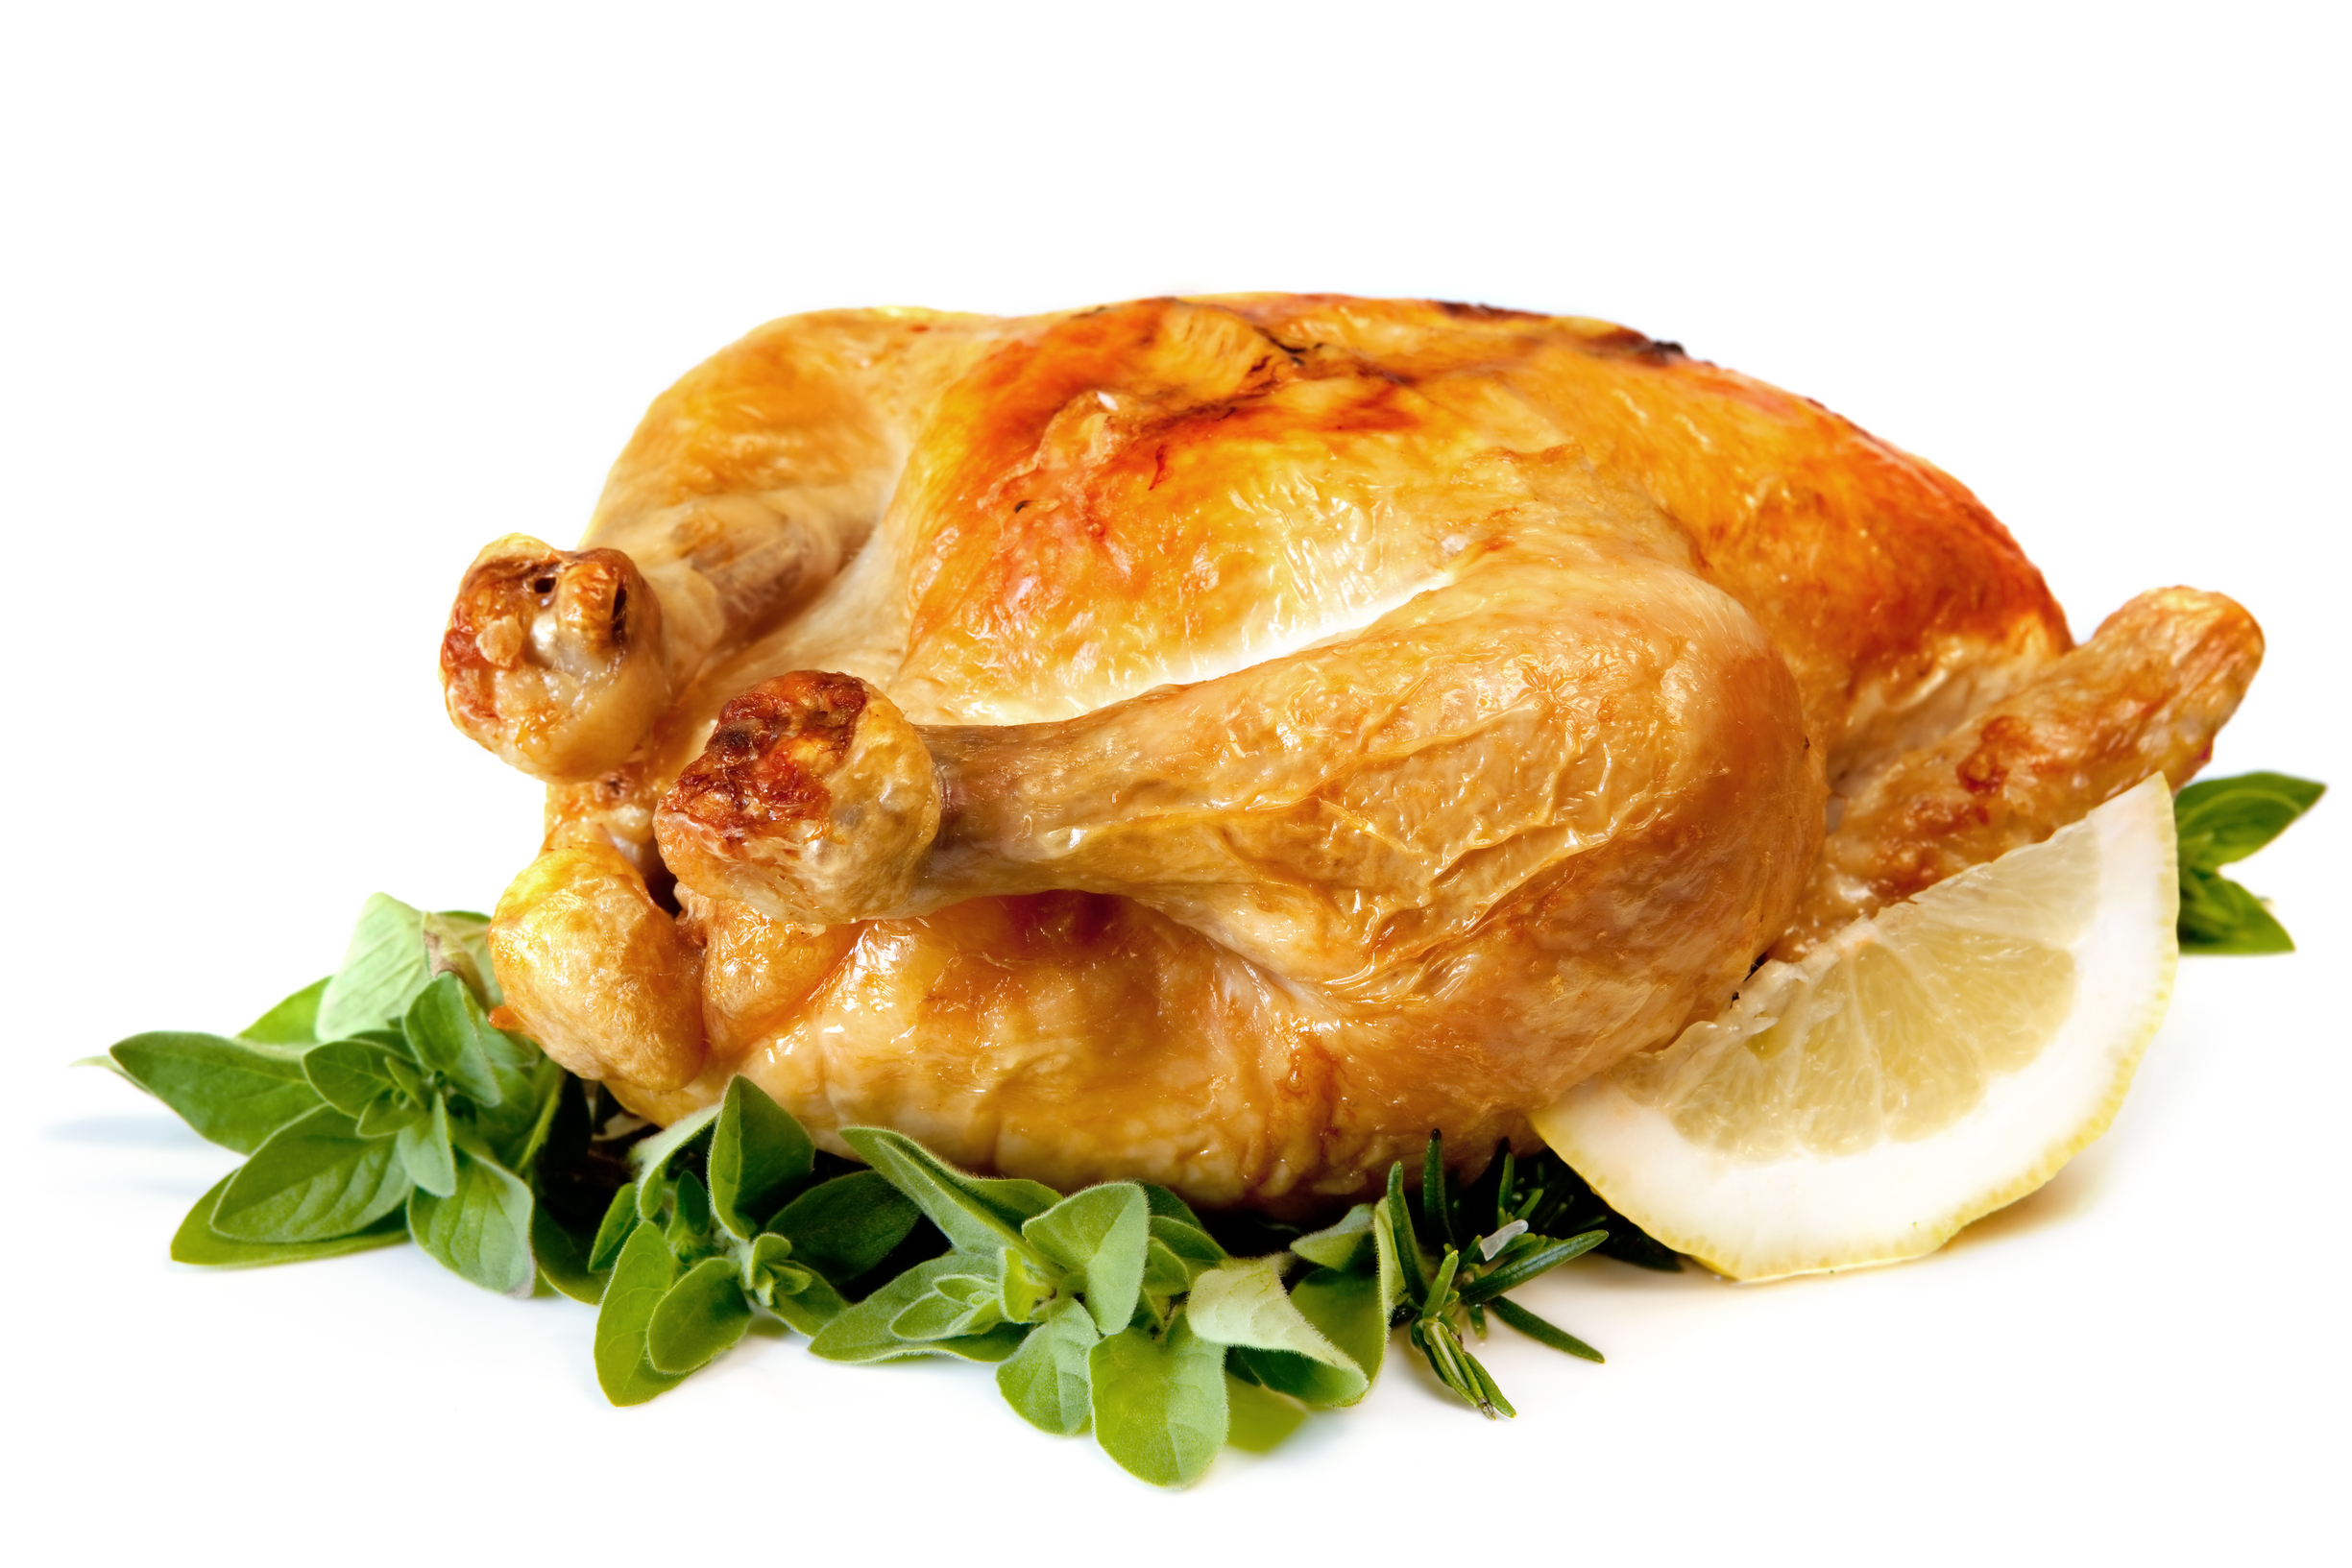 Chicken thigh is another popular cut of meat that is slightly cheaper than chicken breast. One skinless, boneless, cooked chicken thigh (52 grams) contains grams of protein.